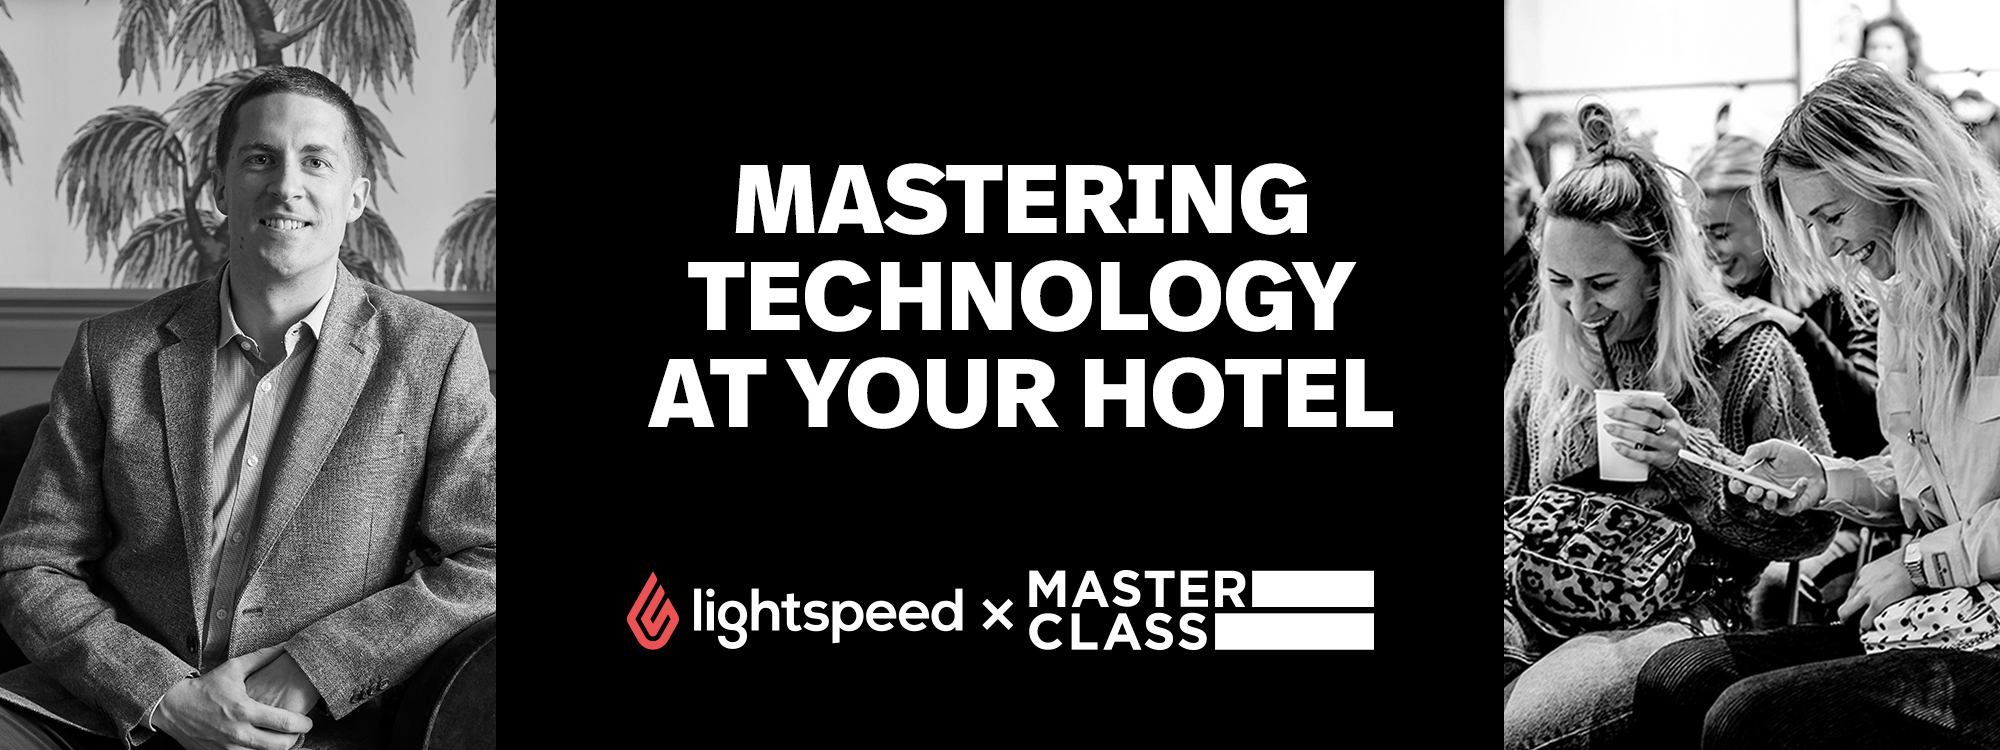 Lightspeed Masterclass: Mastering Technology at Your Hotel